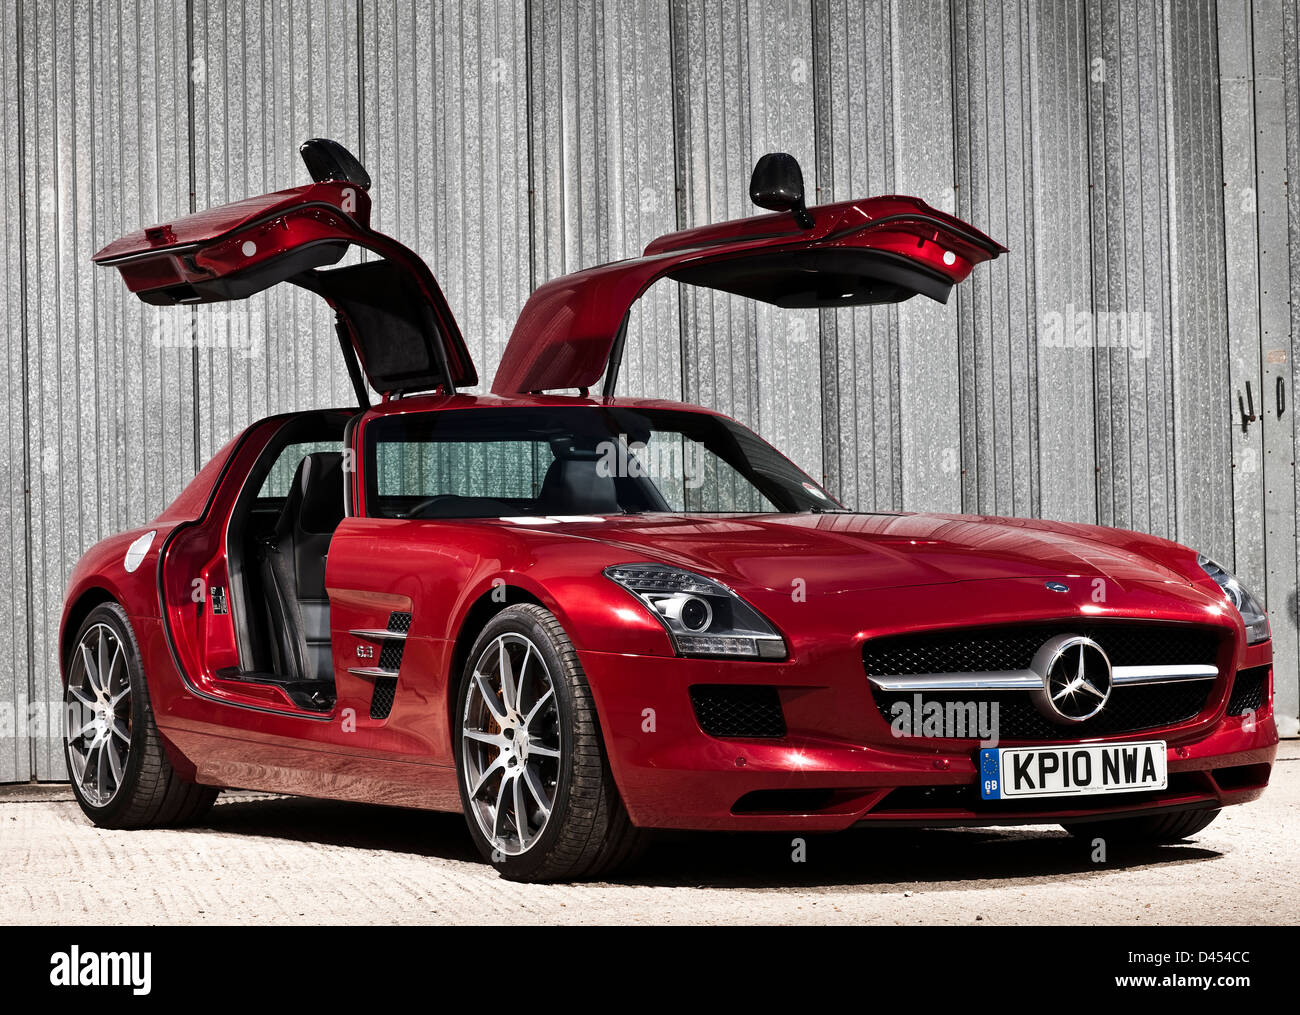 Red Mercedes Benz SLS AMG Luxury Car With Wing Doors, Winchester, UK, 03 09  2010